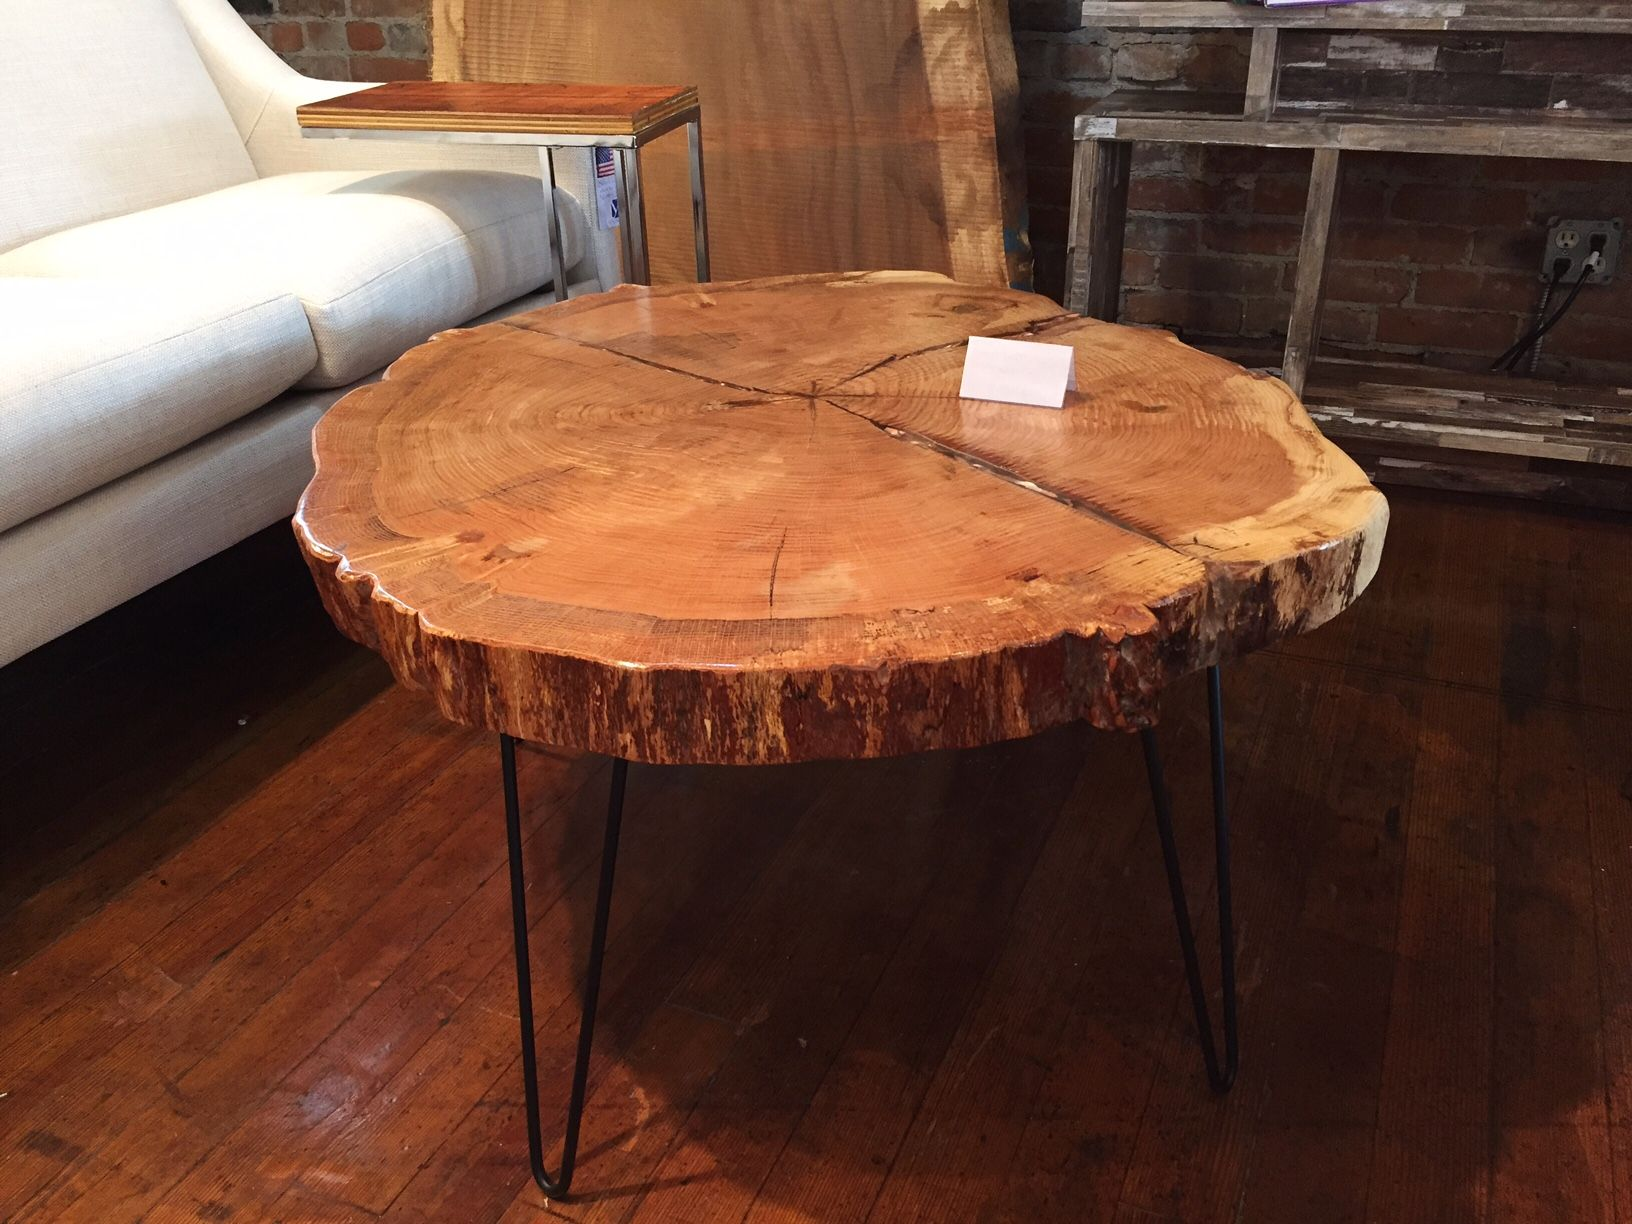 Astounding Finished Live Edge Red Oak Cookie Slab Coffee Table With Download Free Architecture Designs Crovemadebymaigaardcom